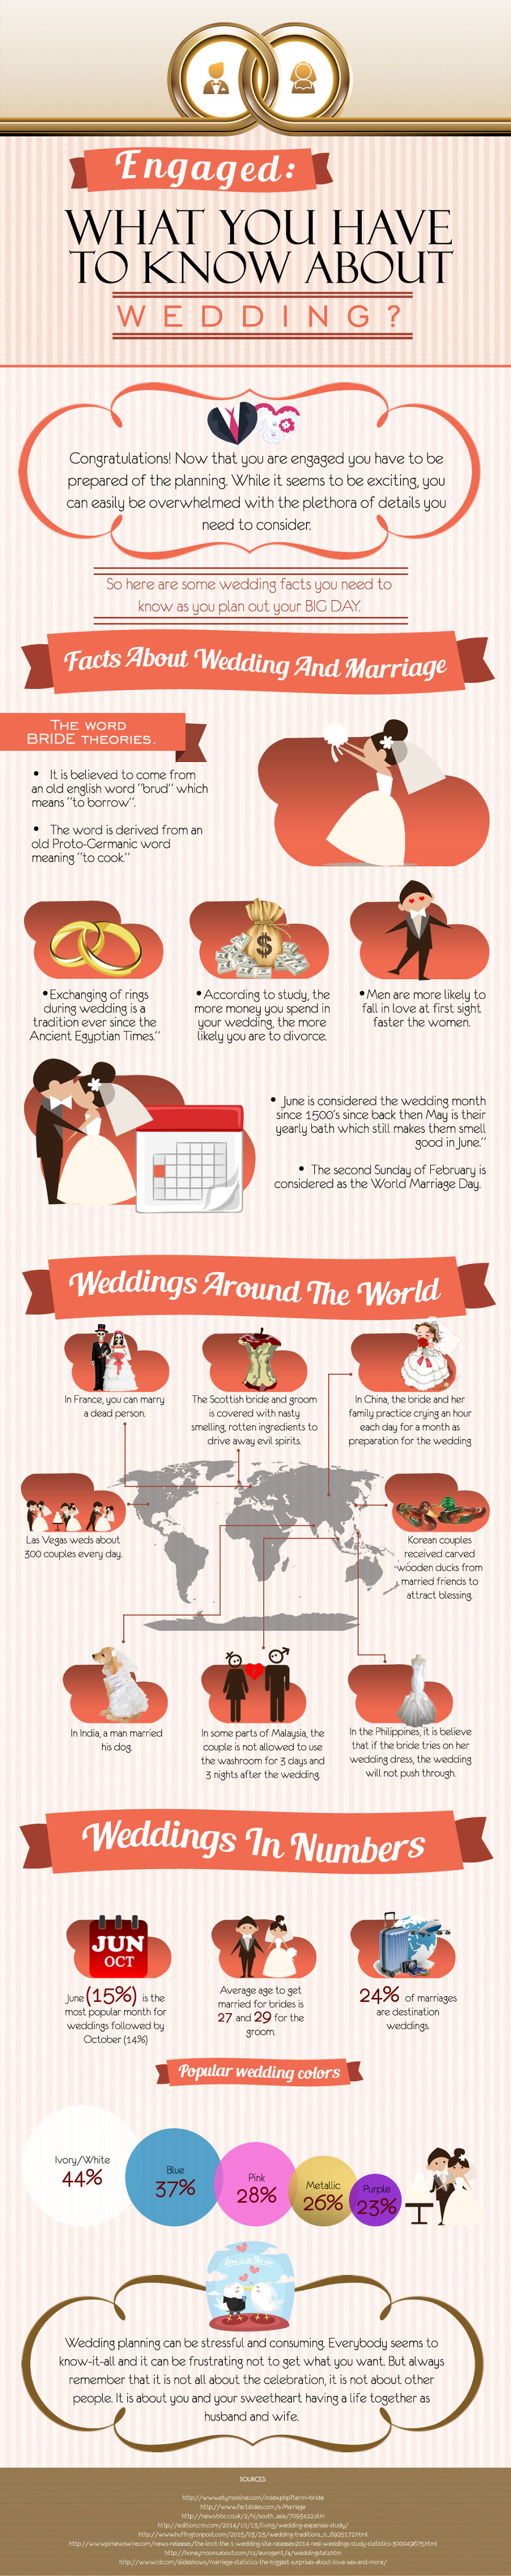 Little-Known But Interesting Facts About Weddings